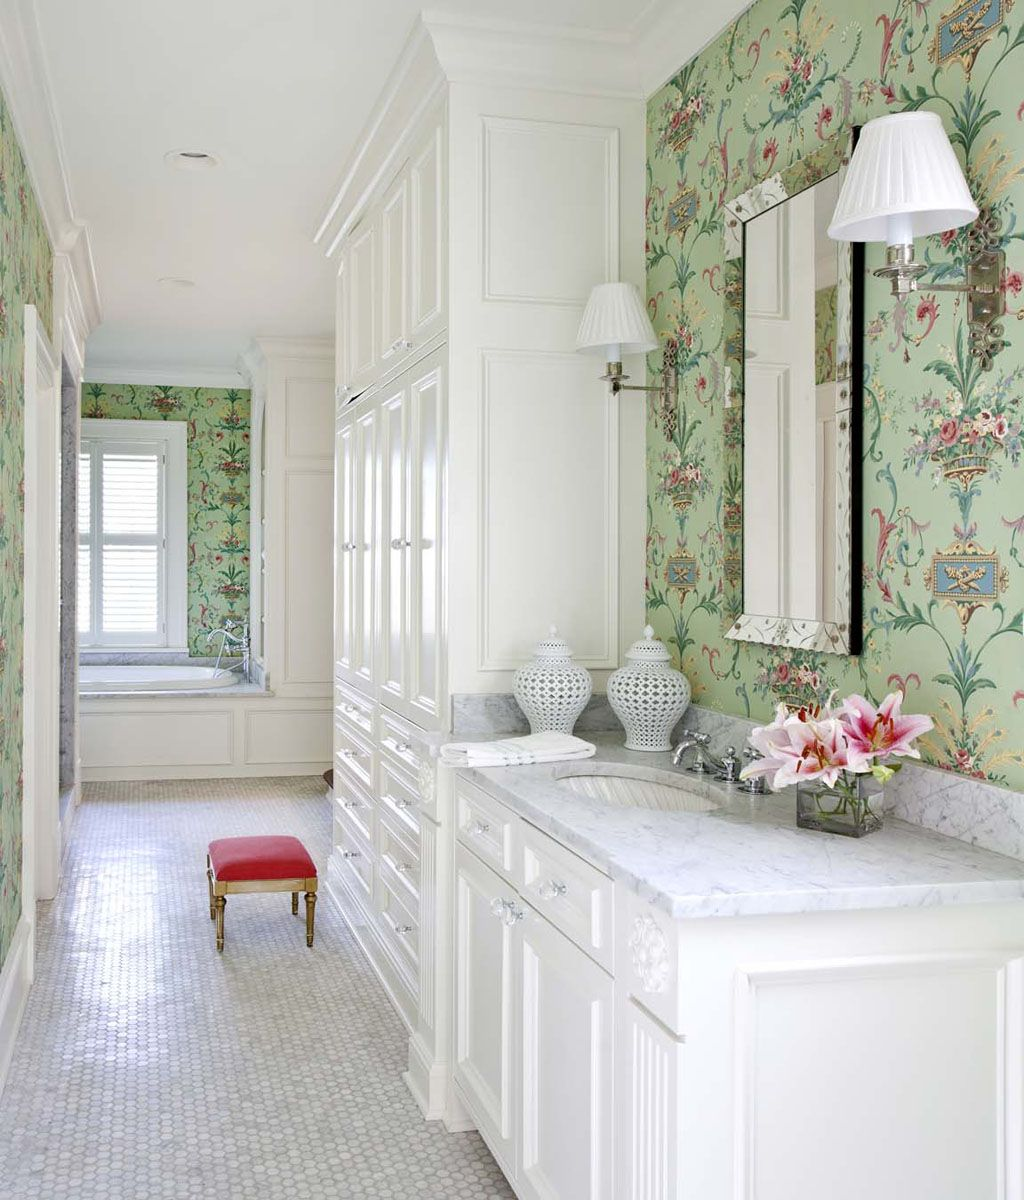 Classic White Bathroom With Mint Green And Pink Wallpaper By Thibaut Kevin Walsh For Bear Hill